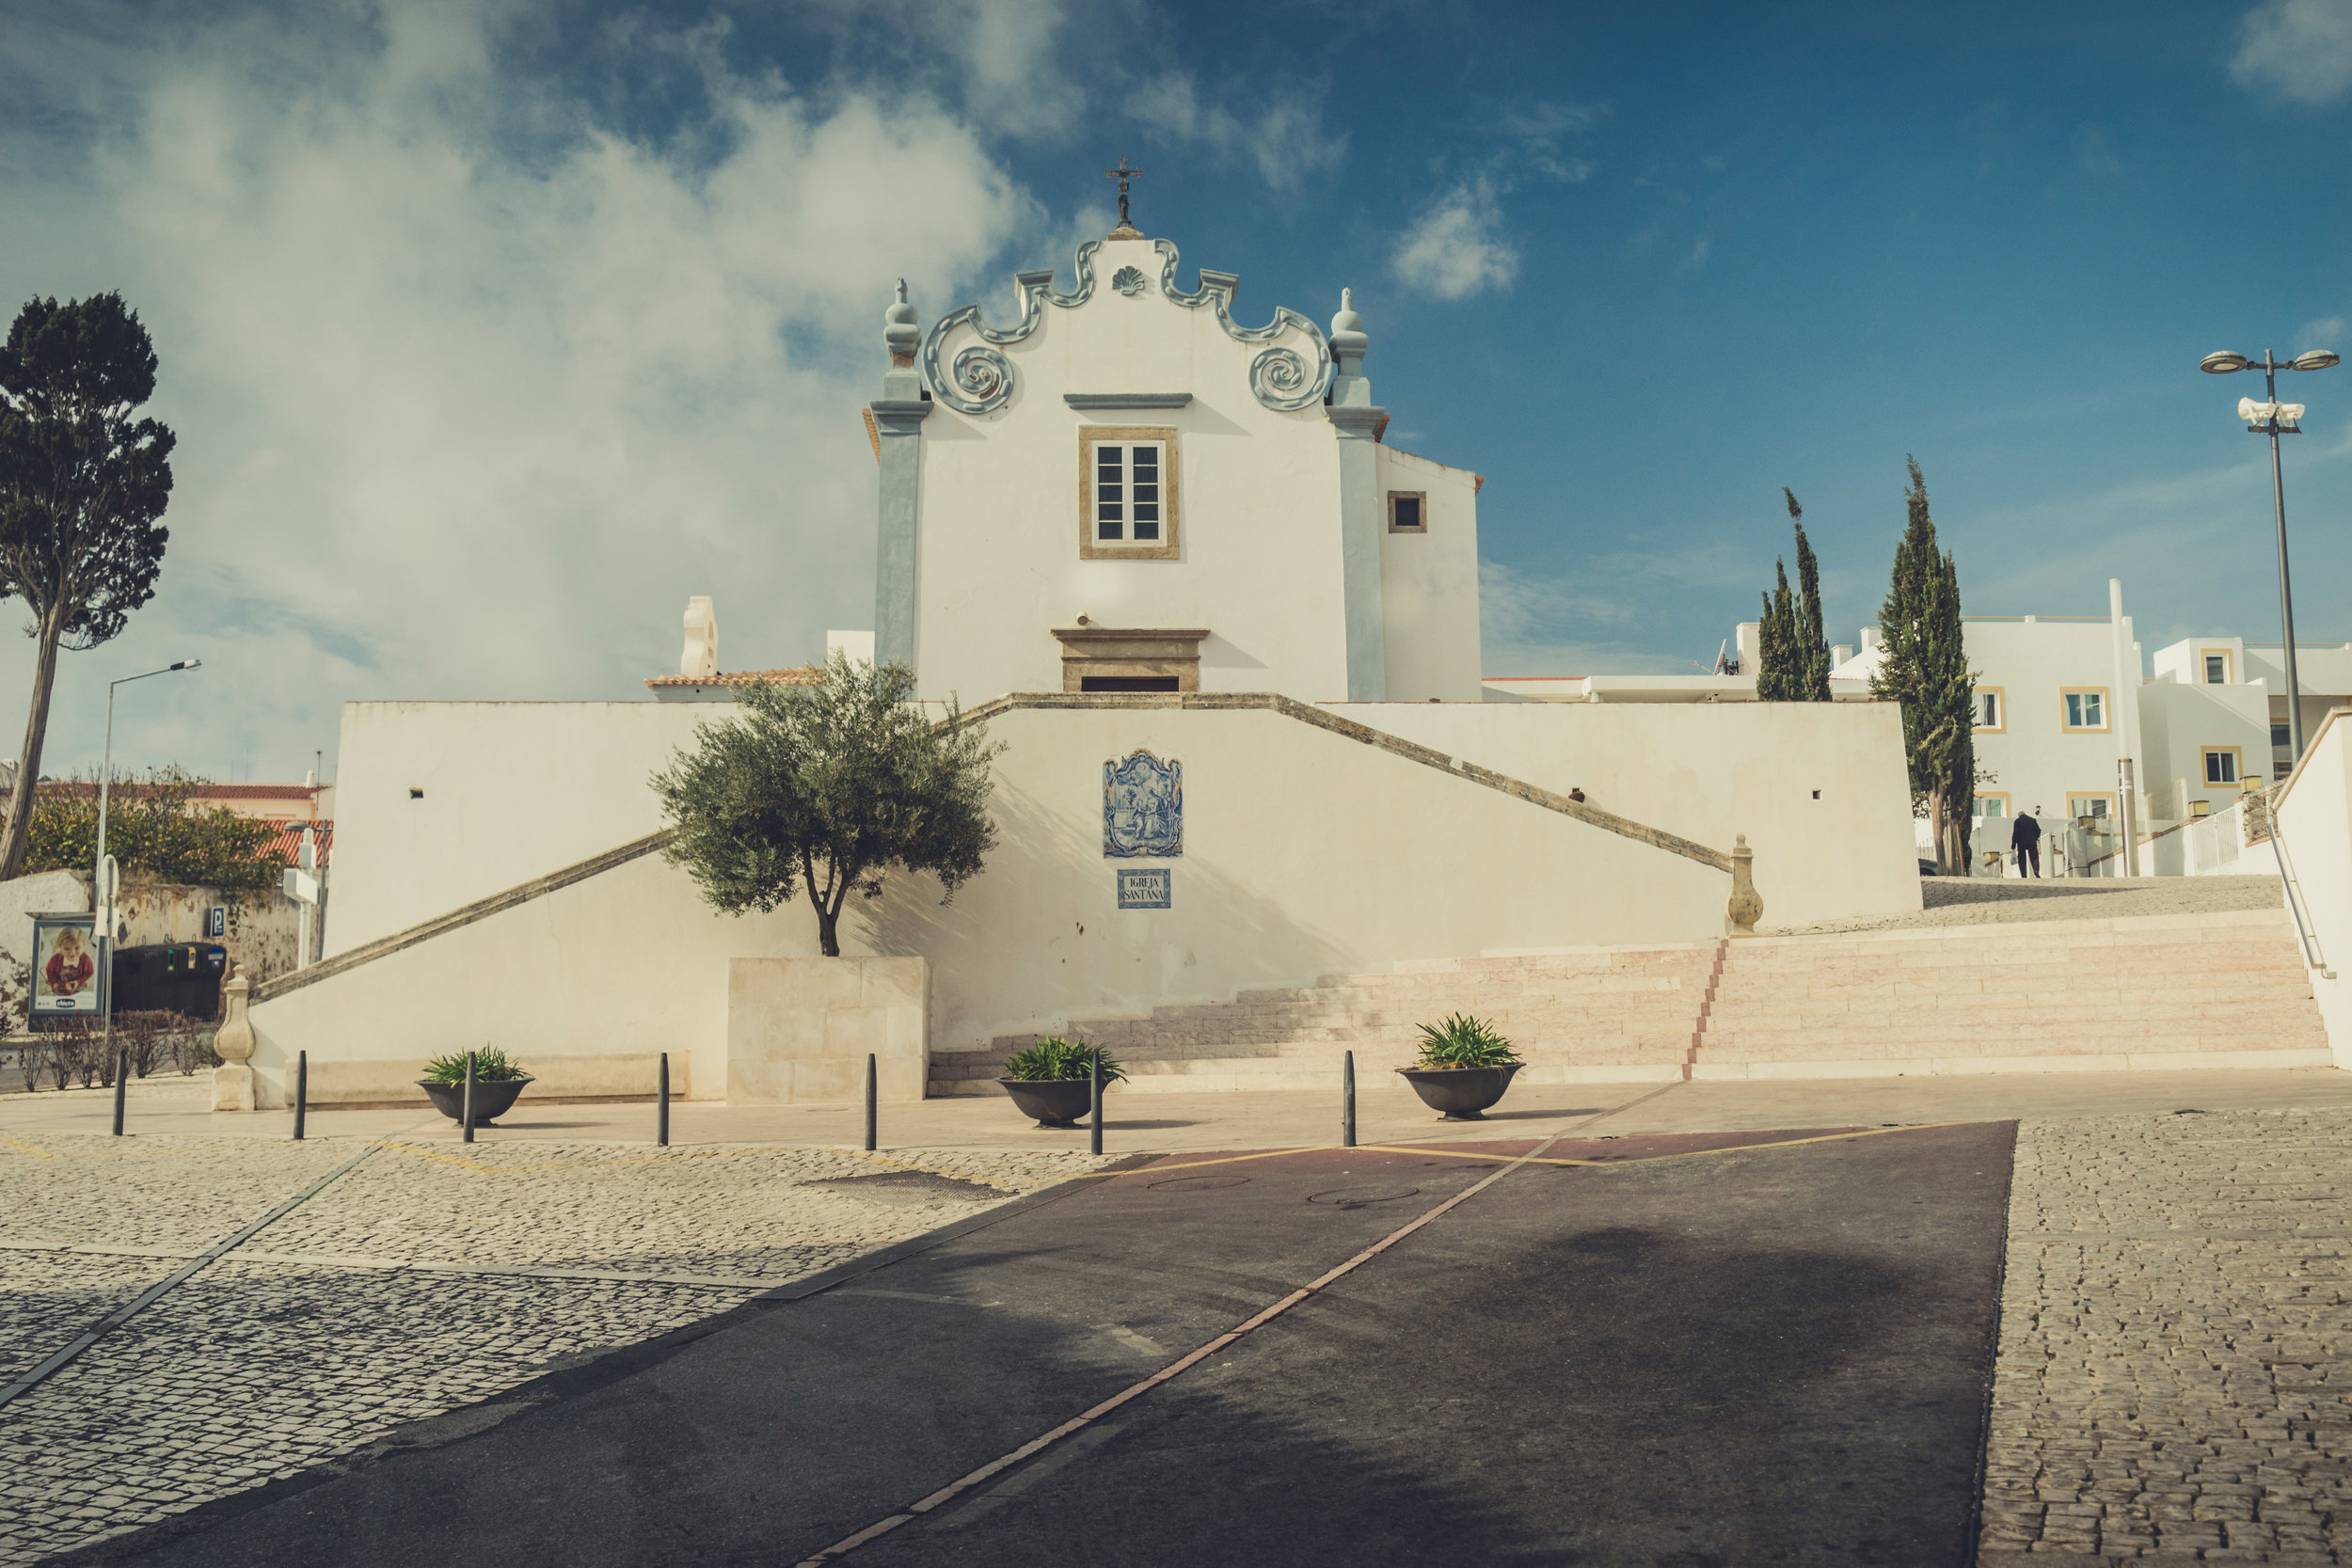 Old town center in albufeira. church on albufeira. old style church in the old town center in albufeira..jpg